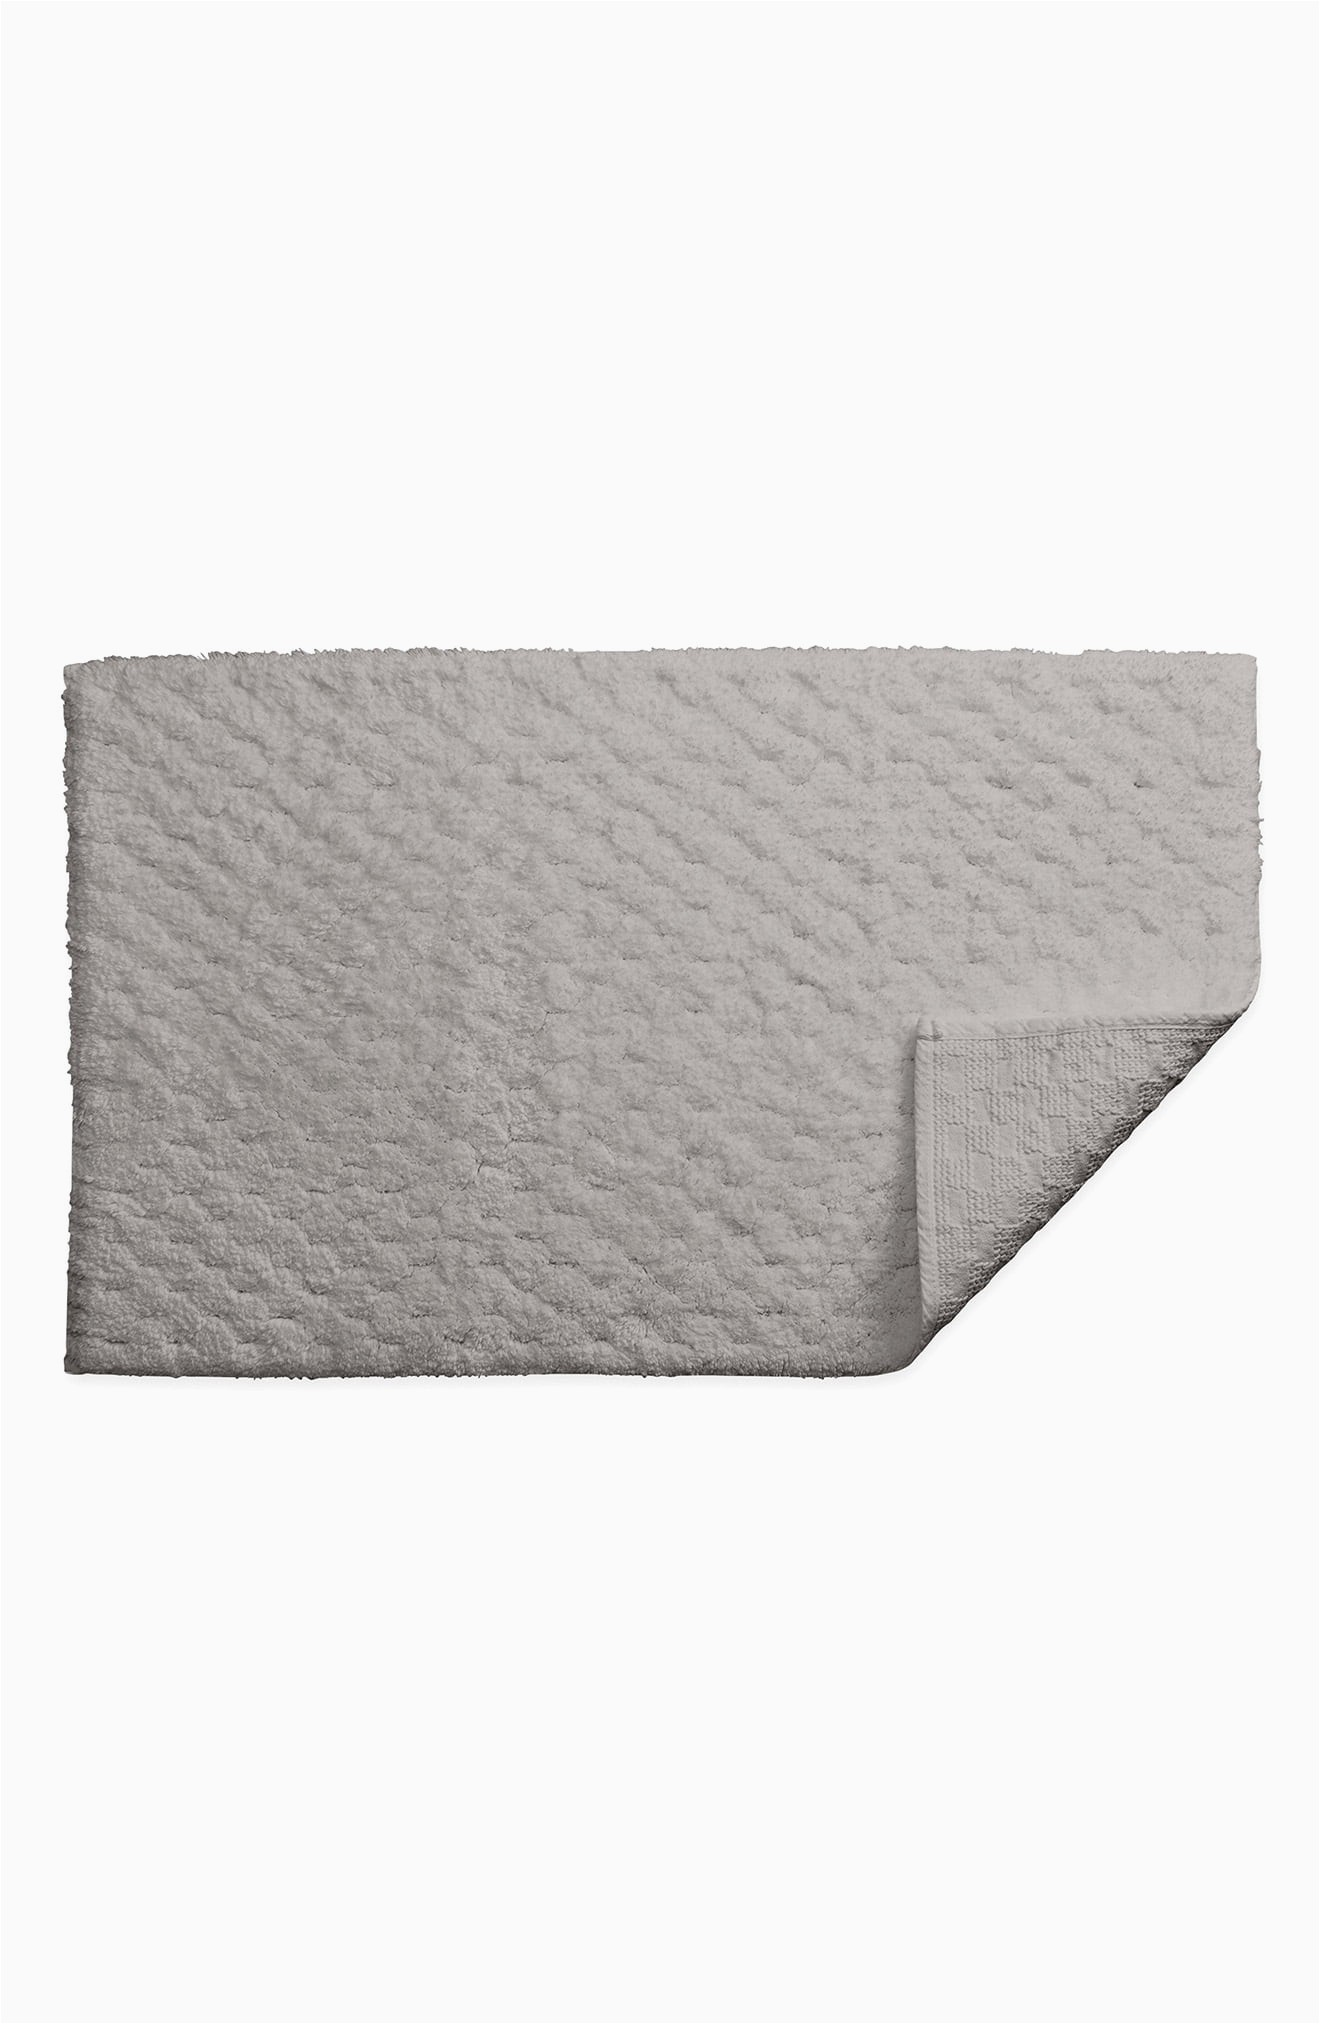 Kassatex athens Bath Rug Shop Link & Usa Bath Mats On Dailymail